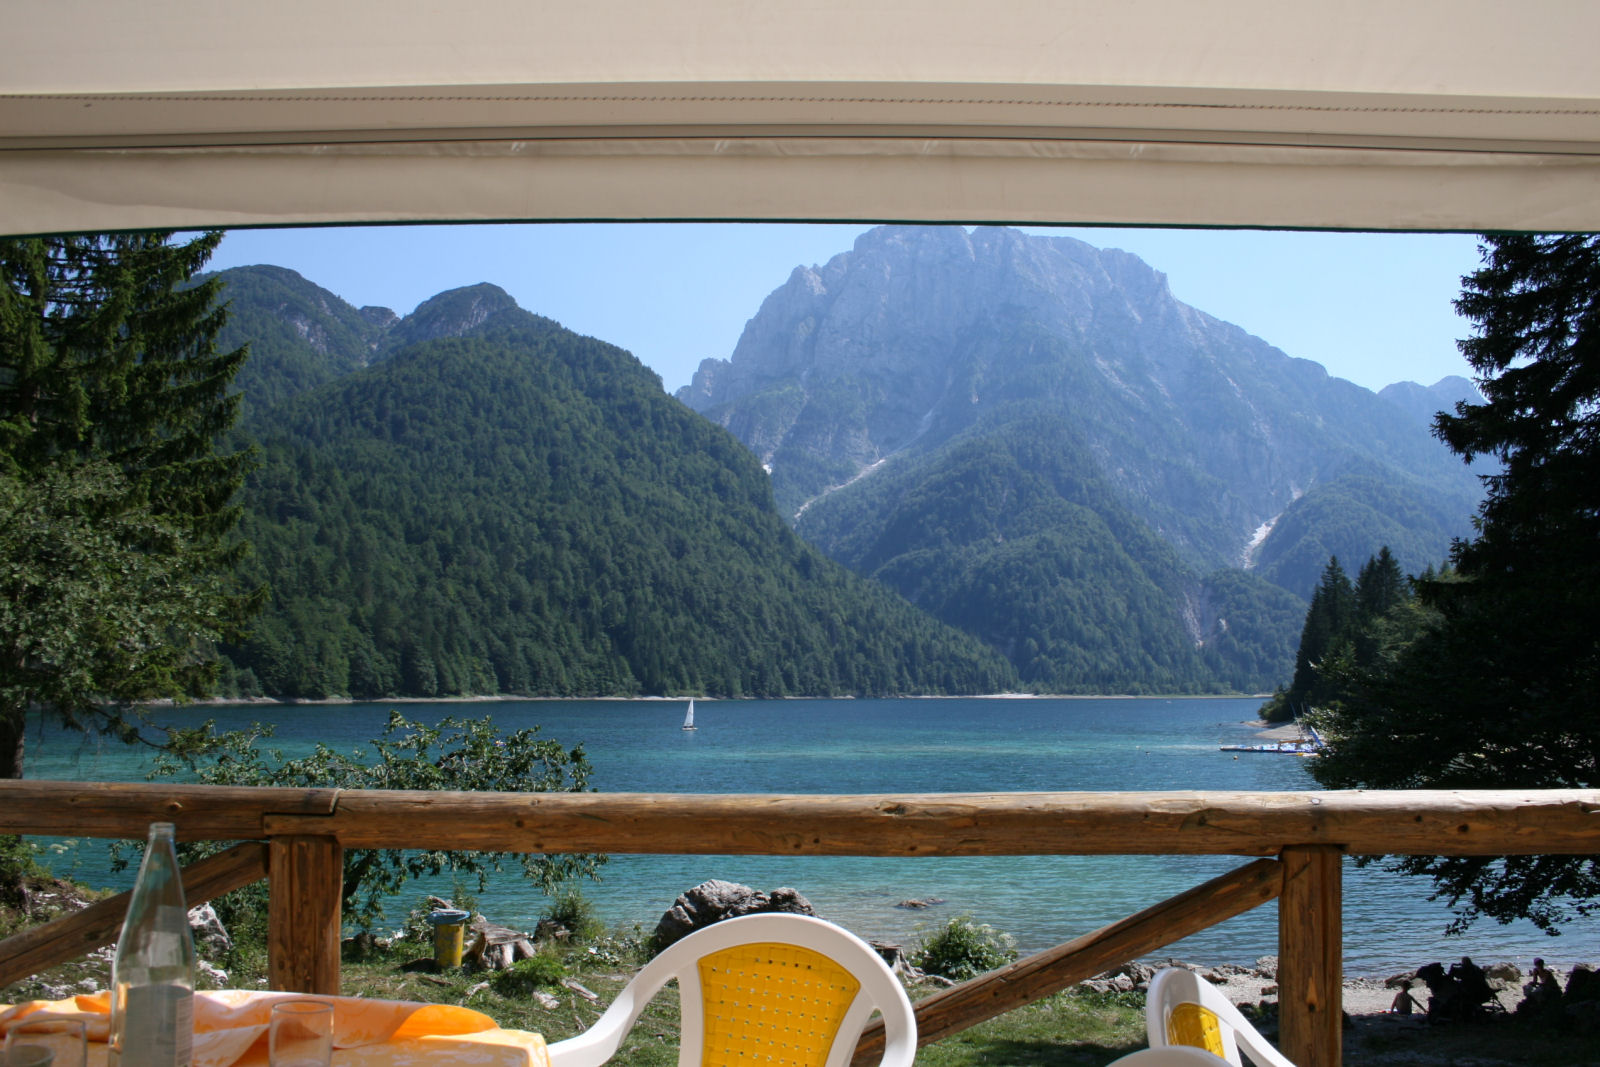 View of the Predil lake from the restaurant next to the lake